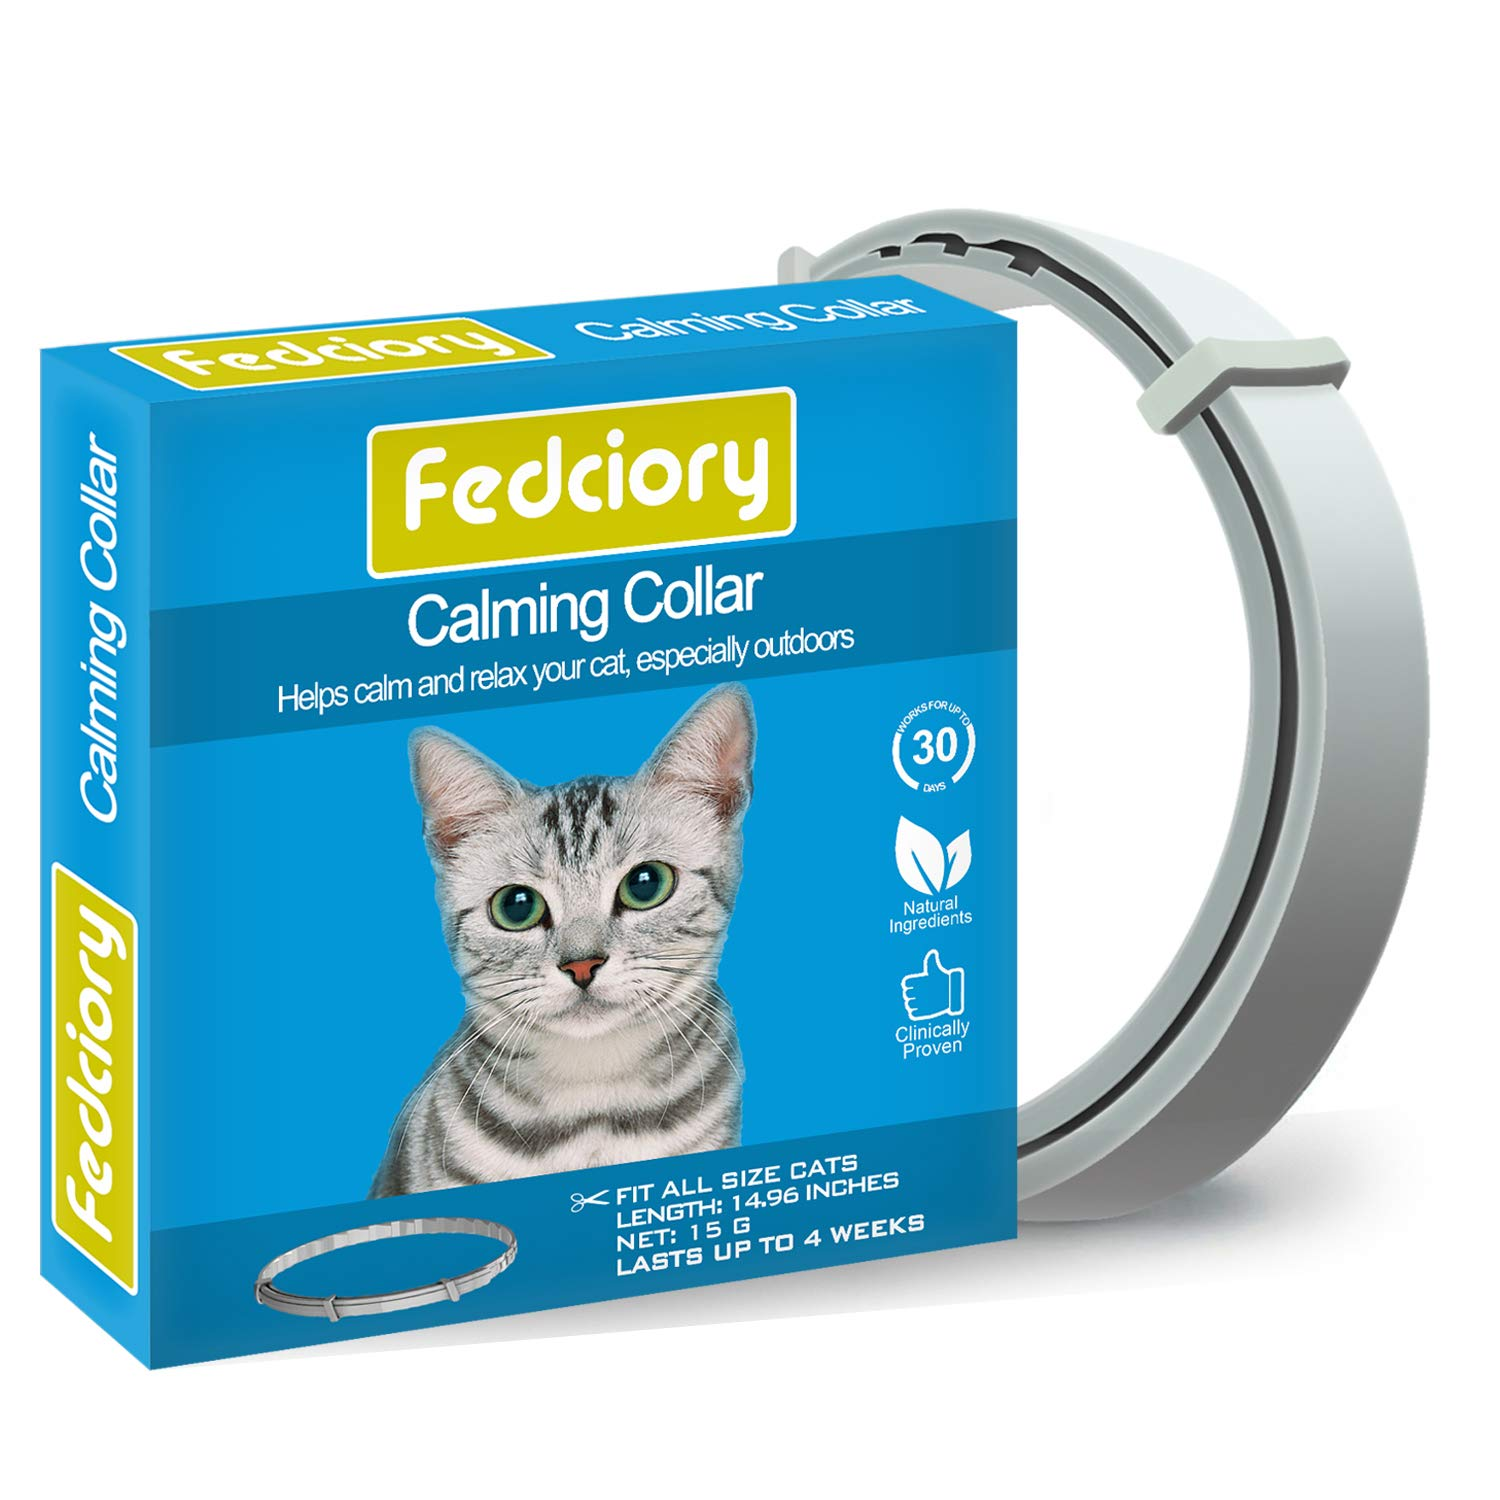 Fedciory Calming Collar for Cats, Adjustable Relieve Reduce Anxiety Pheromone Your Pet Lasting Natural Calm Collarup to 15'' Fits Cat